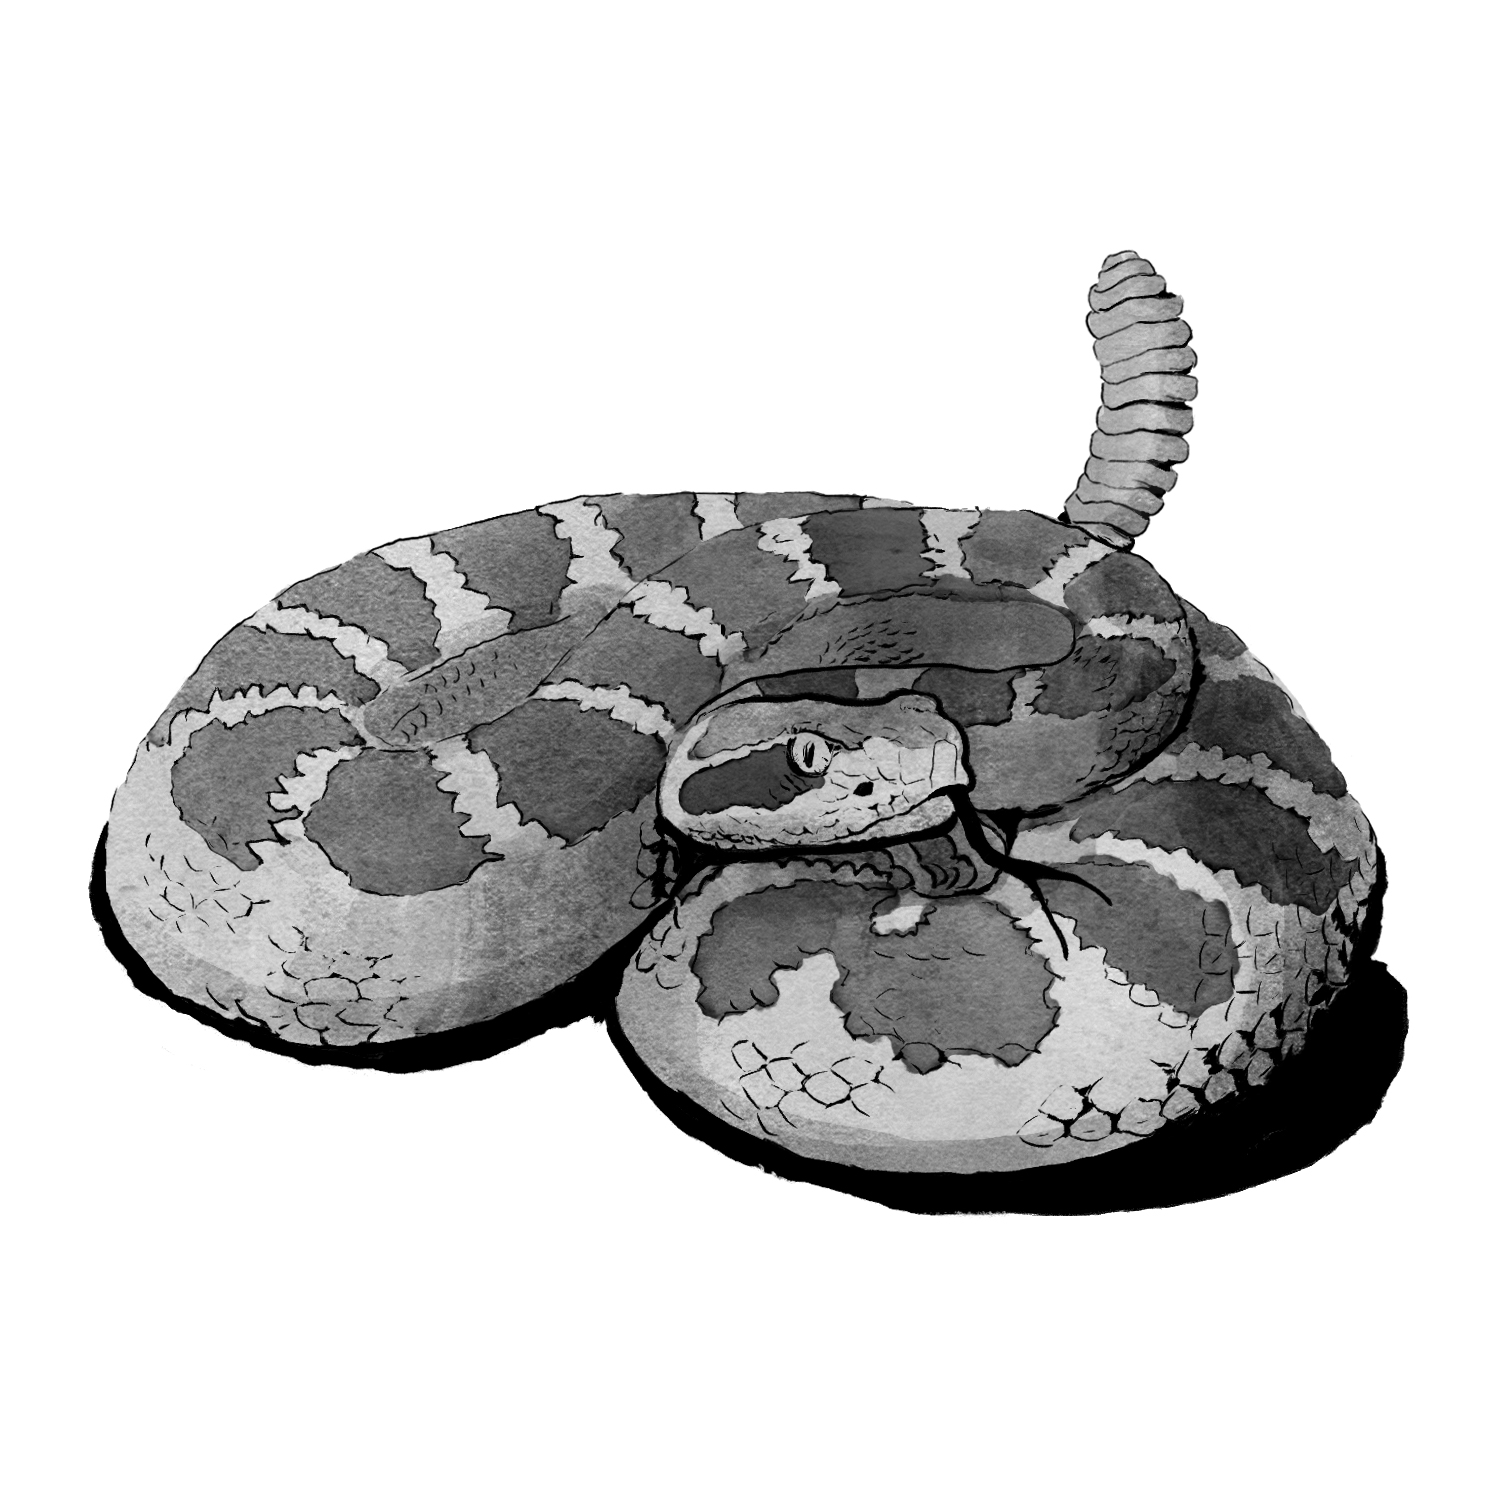 Pupil shape differs in the two species, and is a great way to differentiate between venomous and non-venomous species. Labelling this would have crowded the image, but getting it right and making the pupils highly visible paves the way for further discussion.